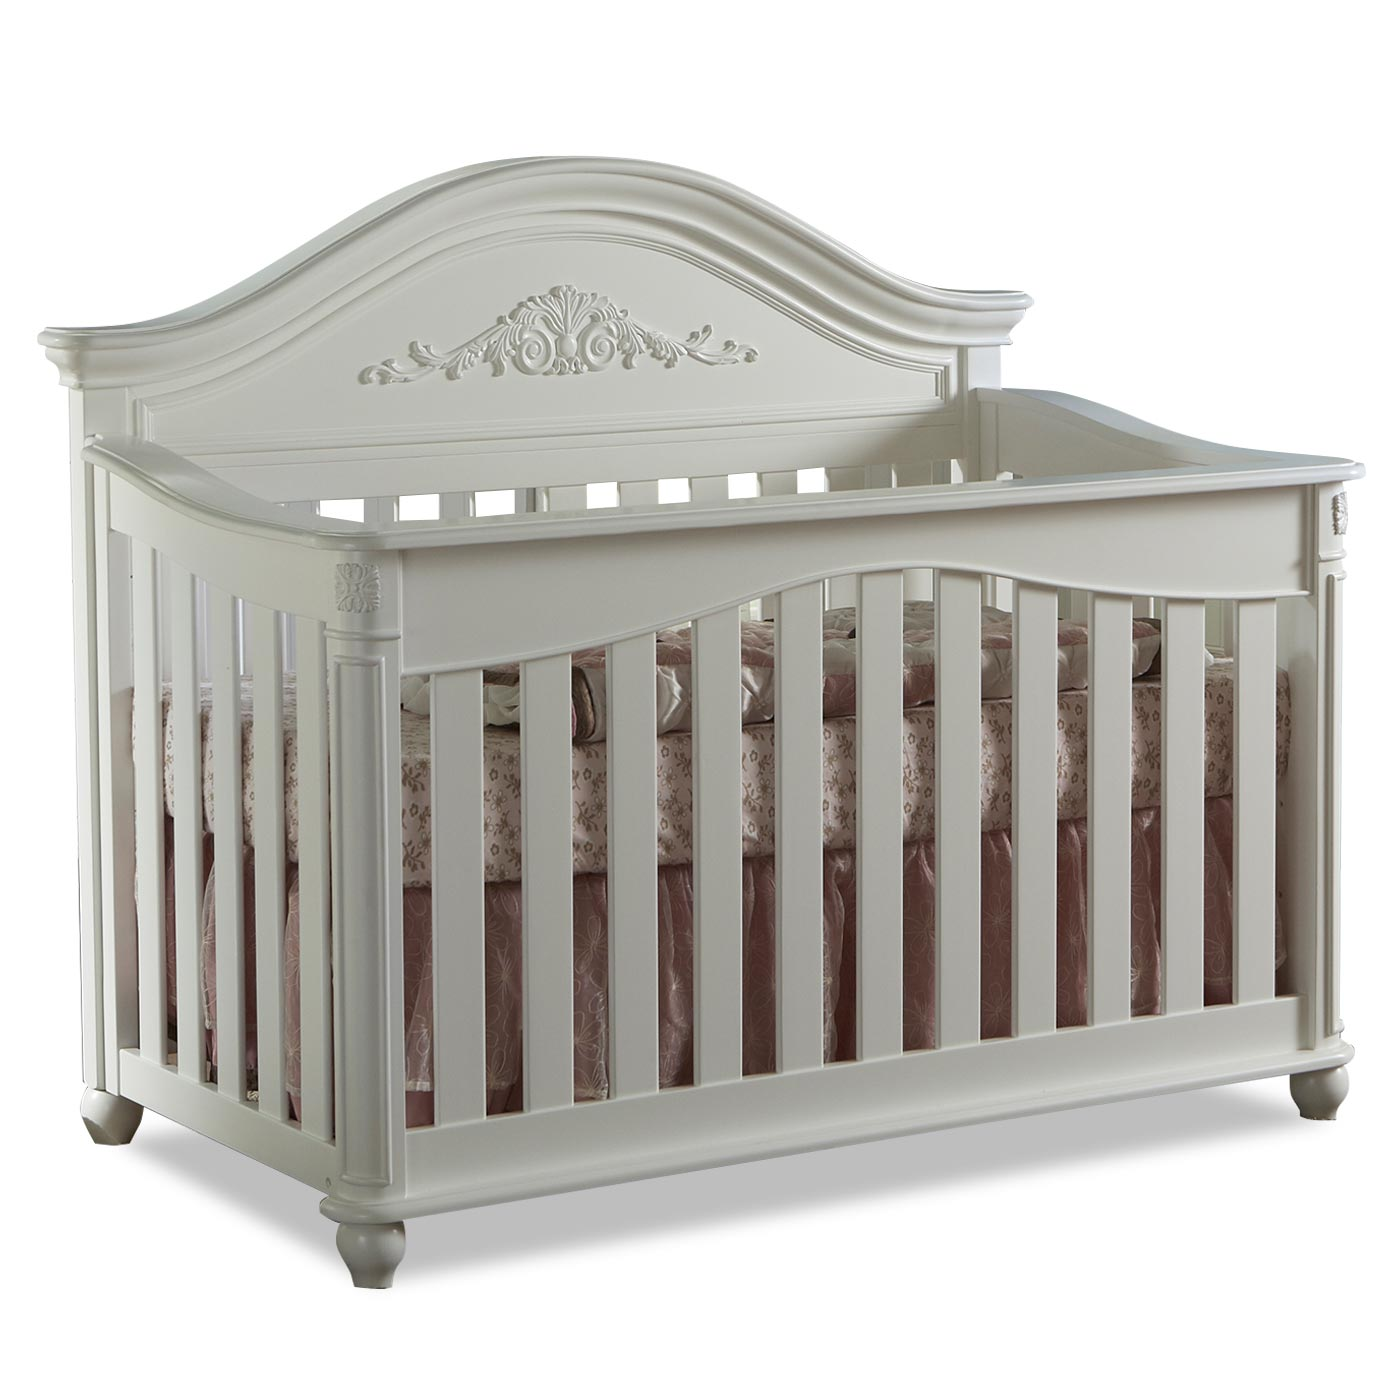 Pali crib for sale used - Pali Crib For Sale Used 8